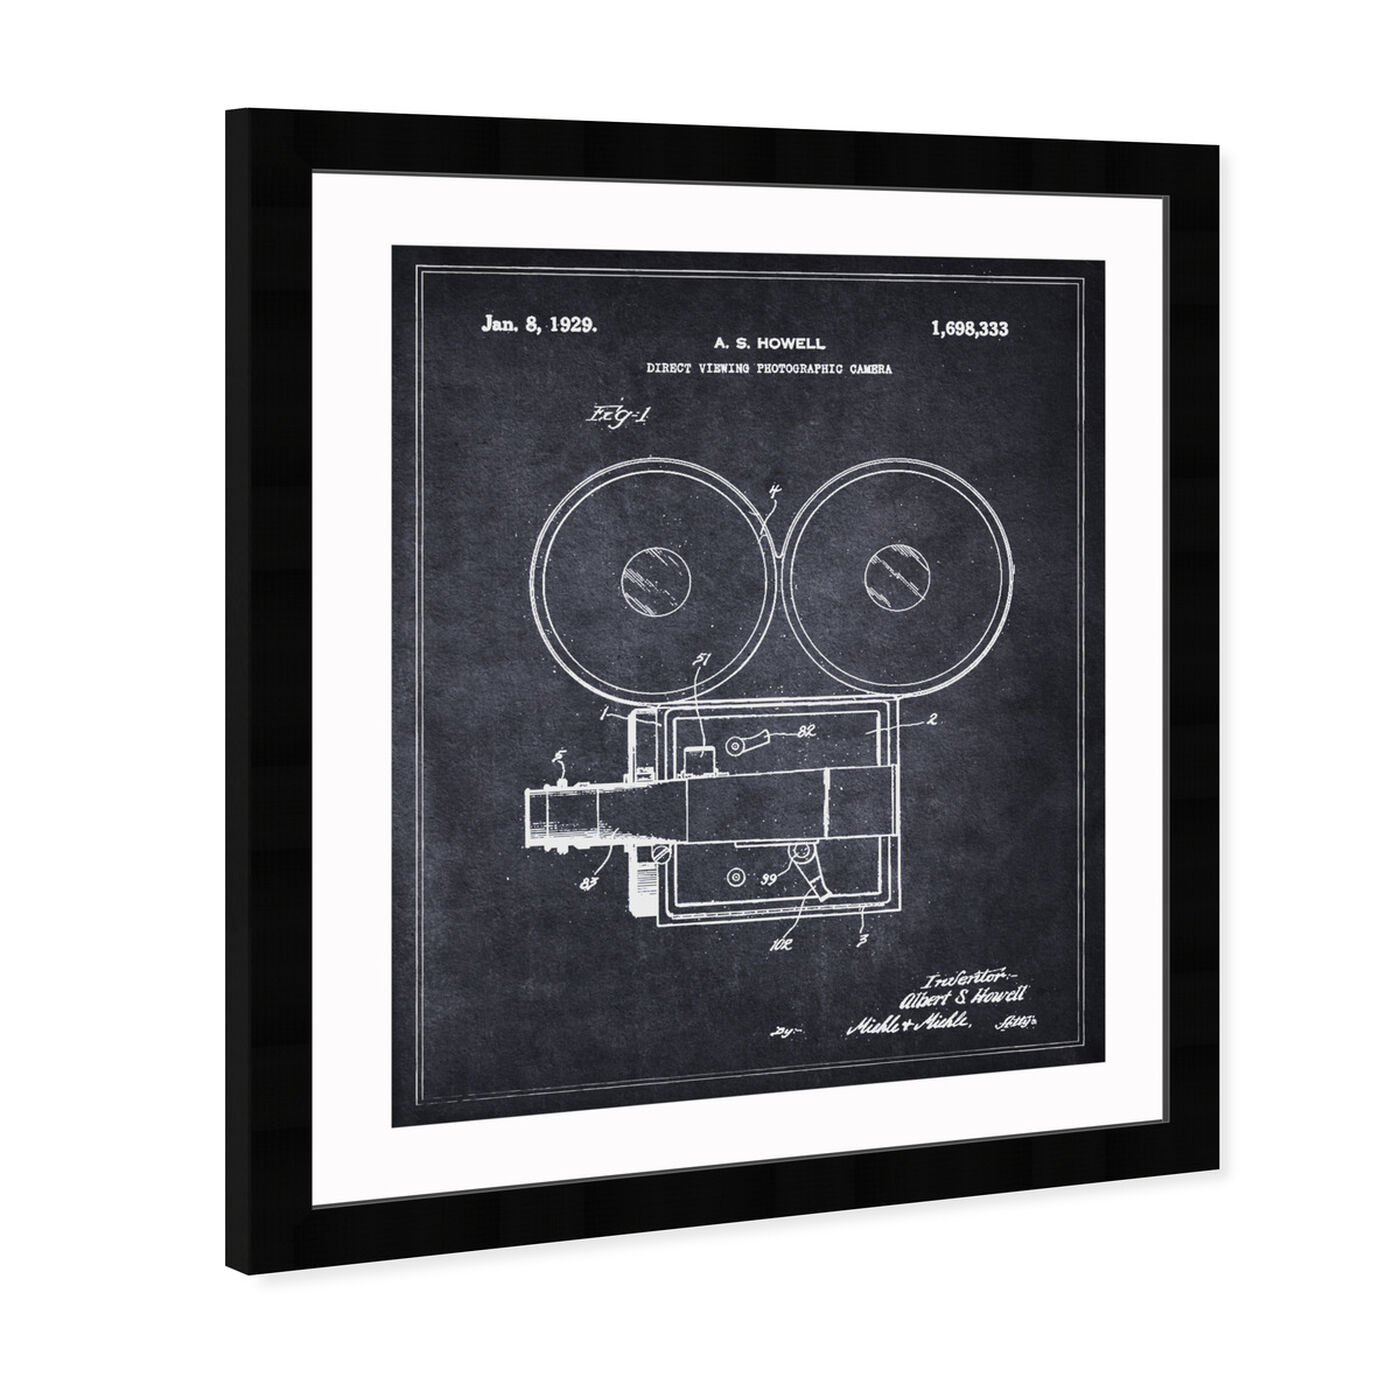 Angled view of Direct Viewing Photographic Camera 1929  featuring people and portraits and professions art.